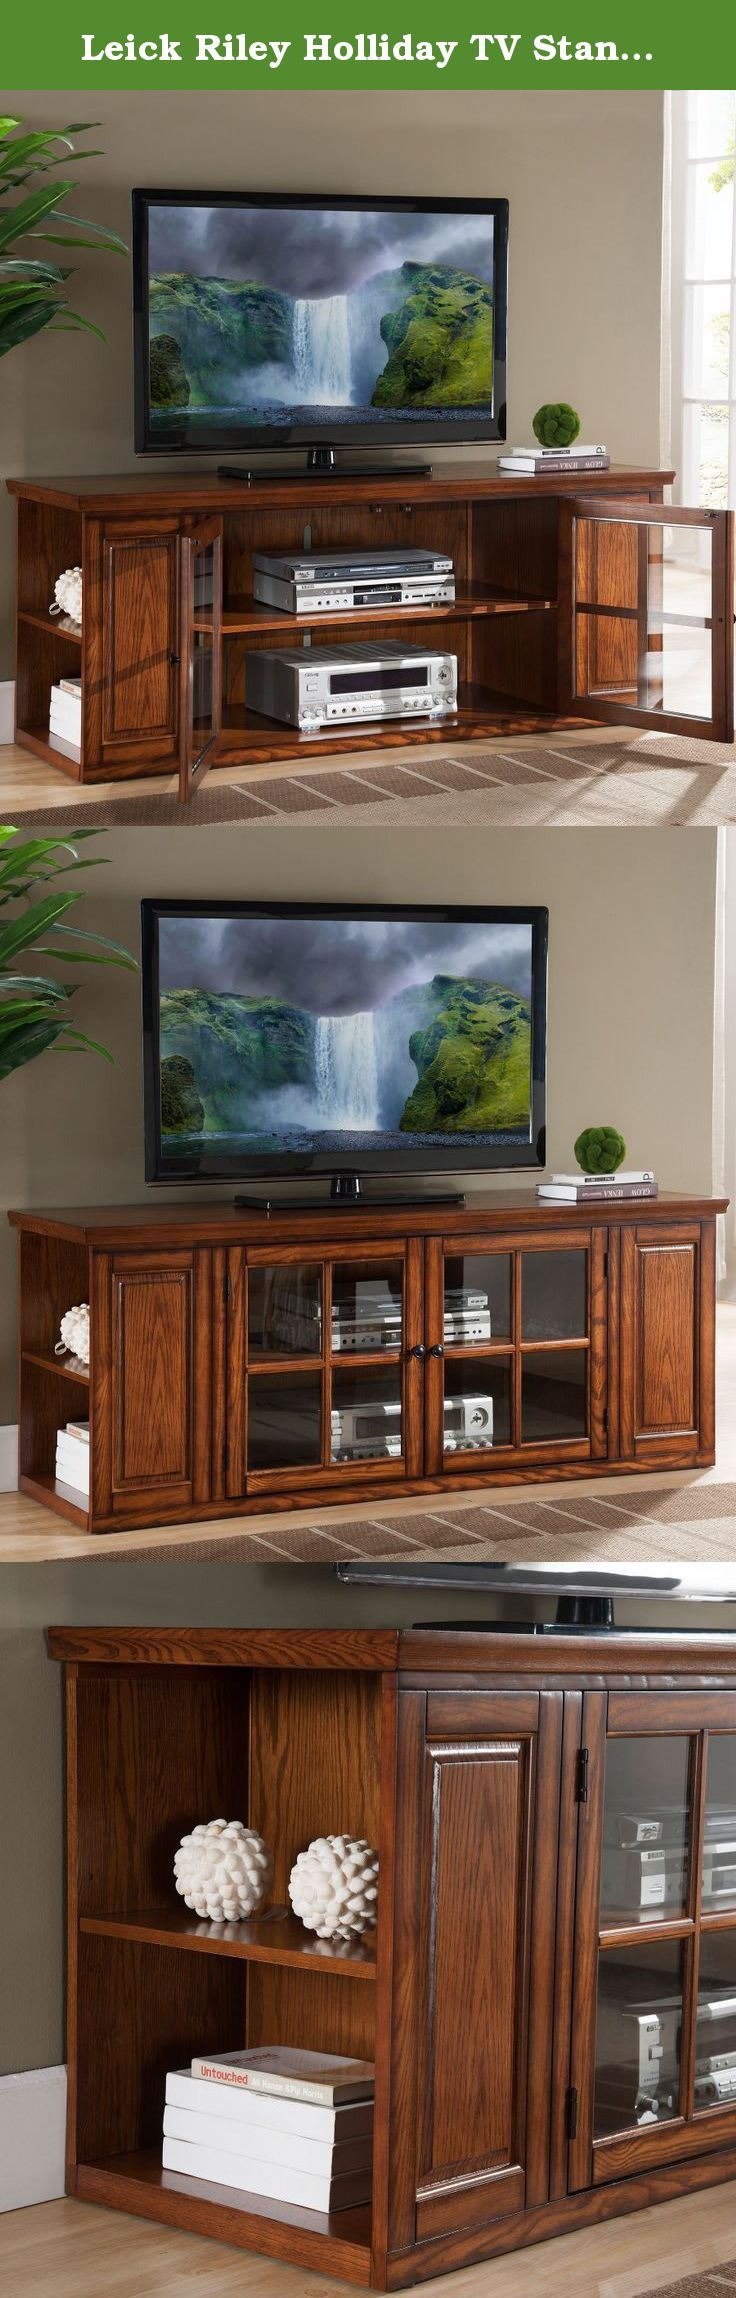 Leick Riley Holliday Tv Stand 62 Inch Burnished Television